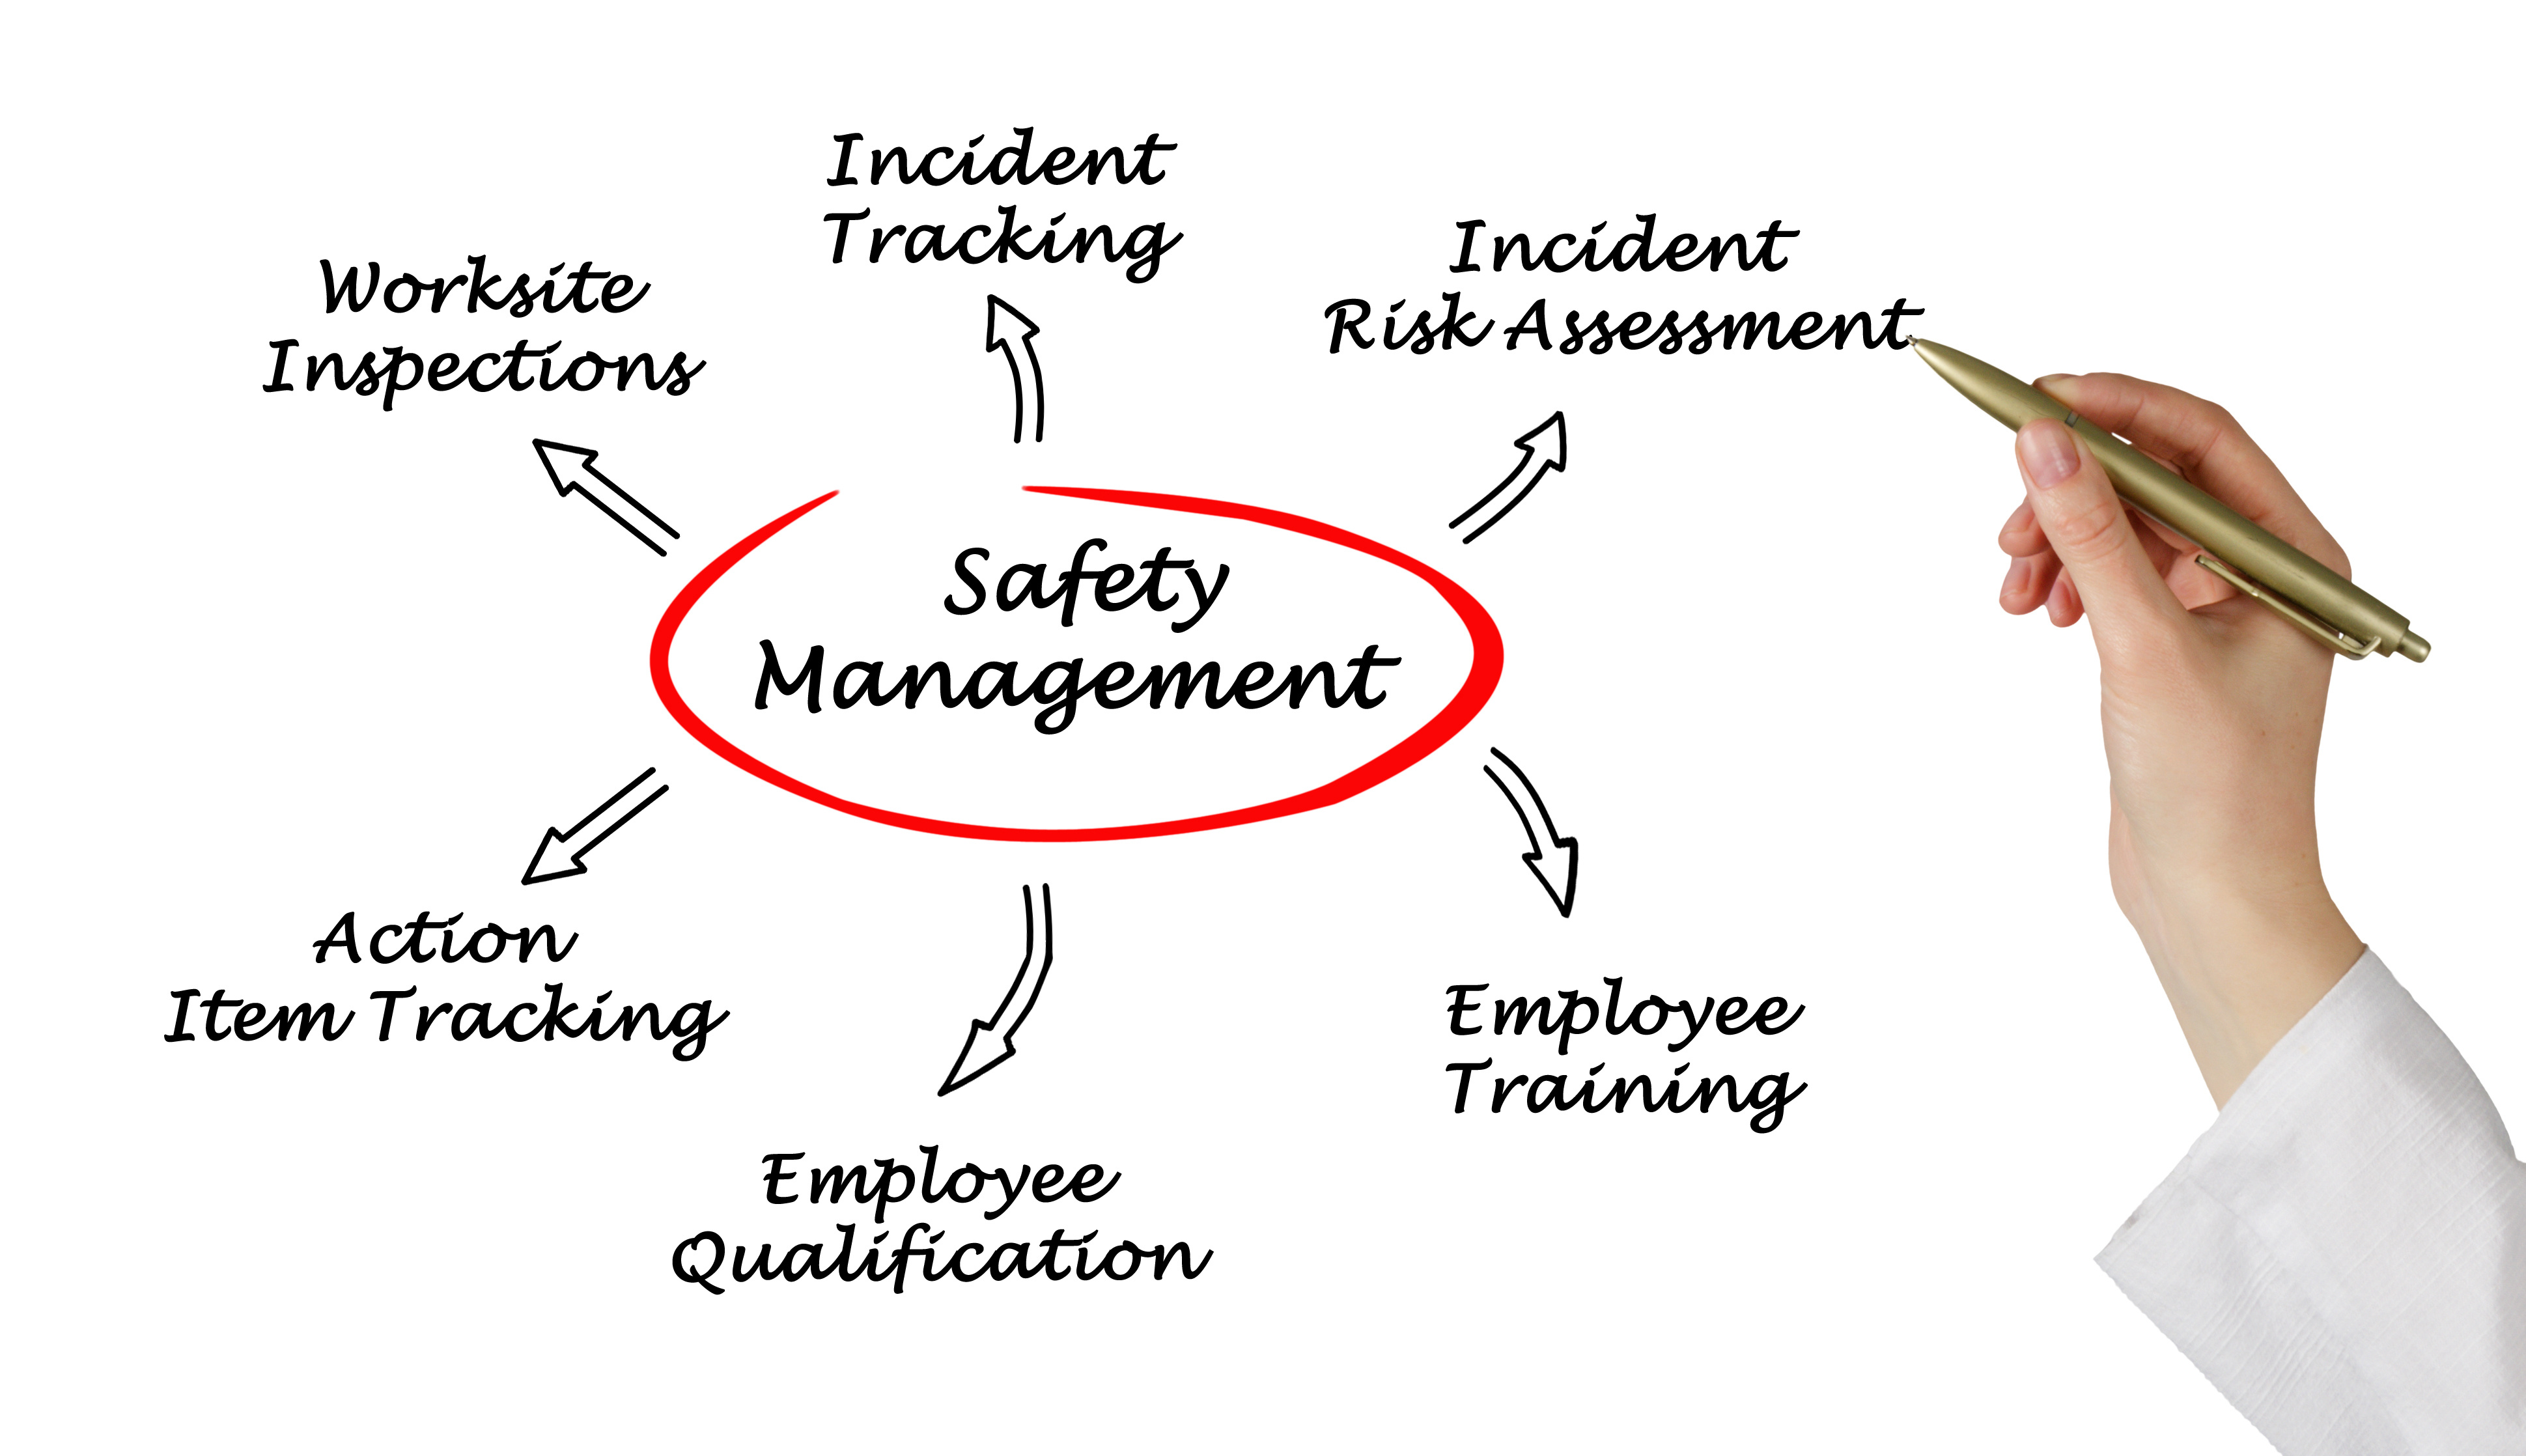 What is a Total Case Incident Rate – TCIR?